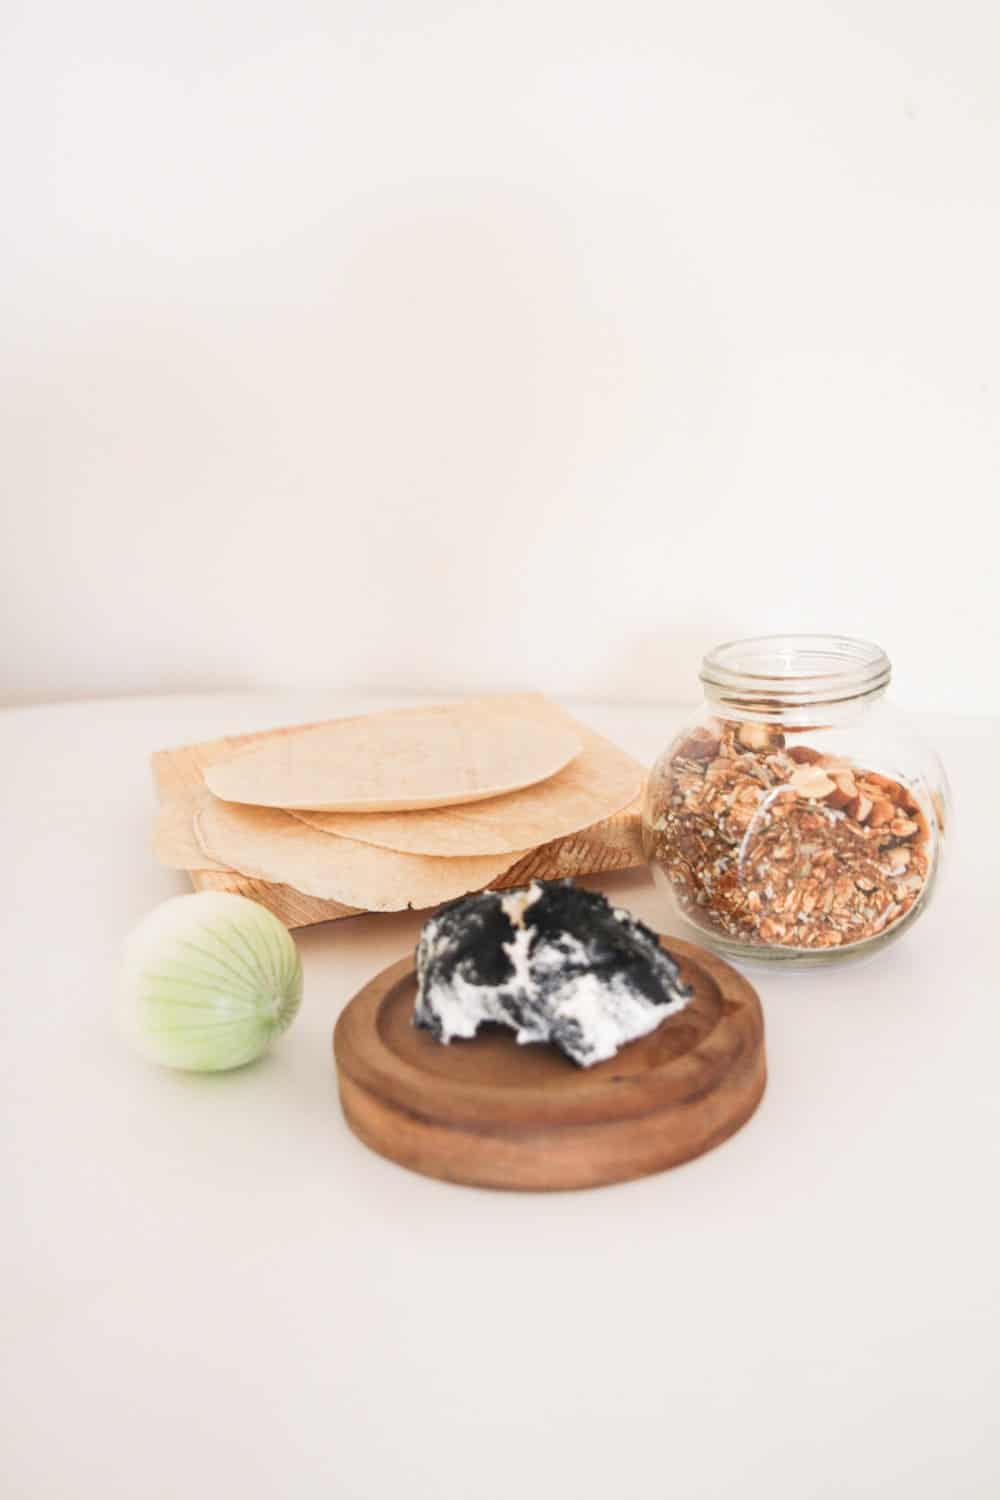 Ingredients for Goat Cheese Wraps -Onion, tortilla, goat cheese, and optional - granola